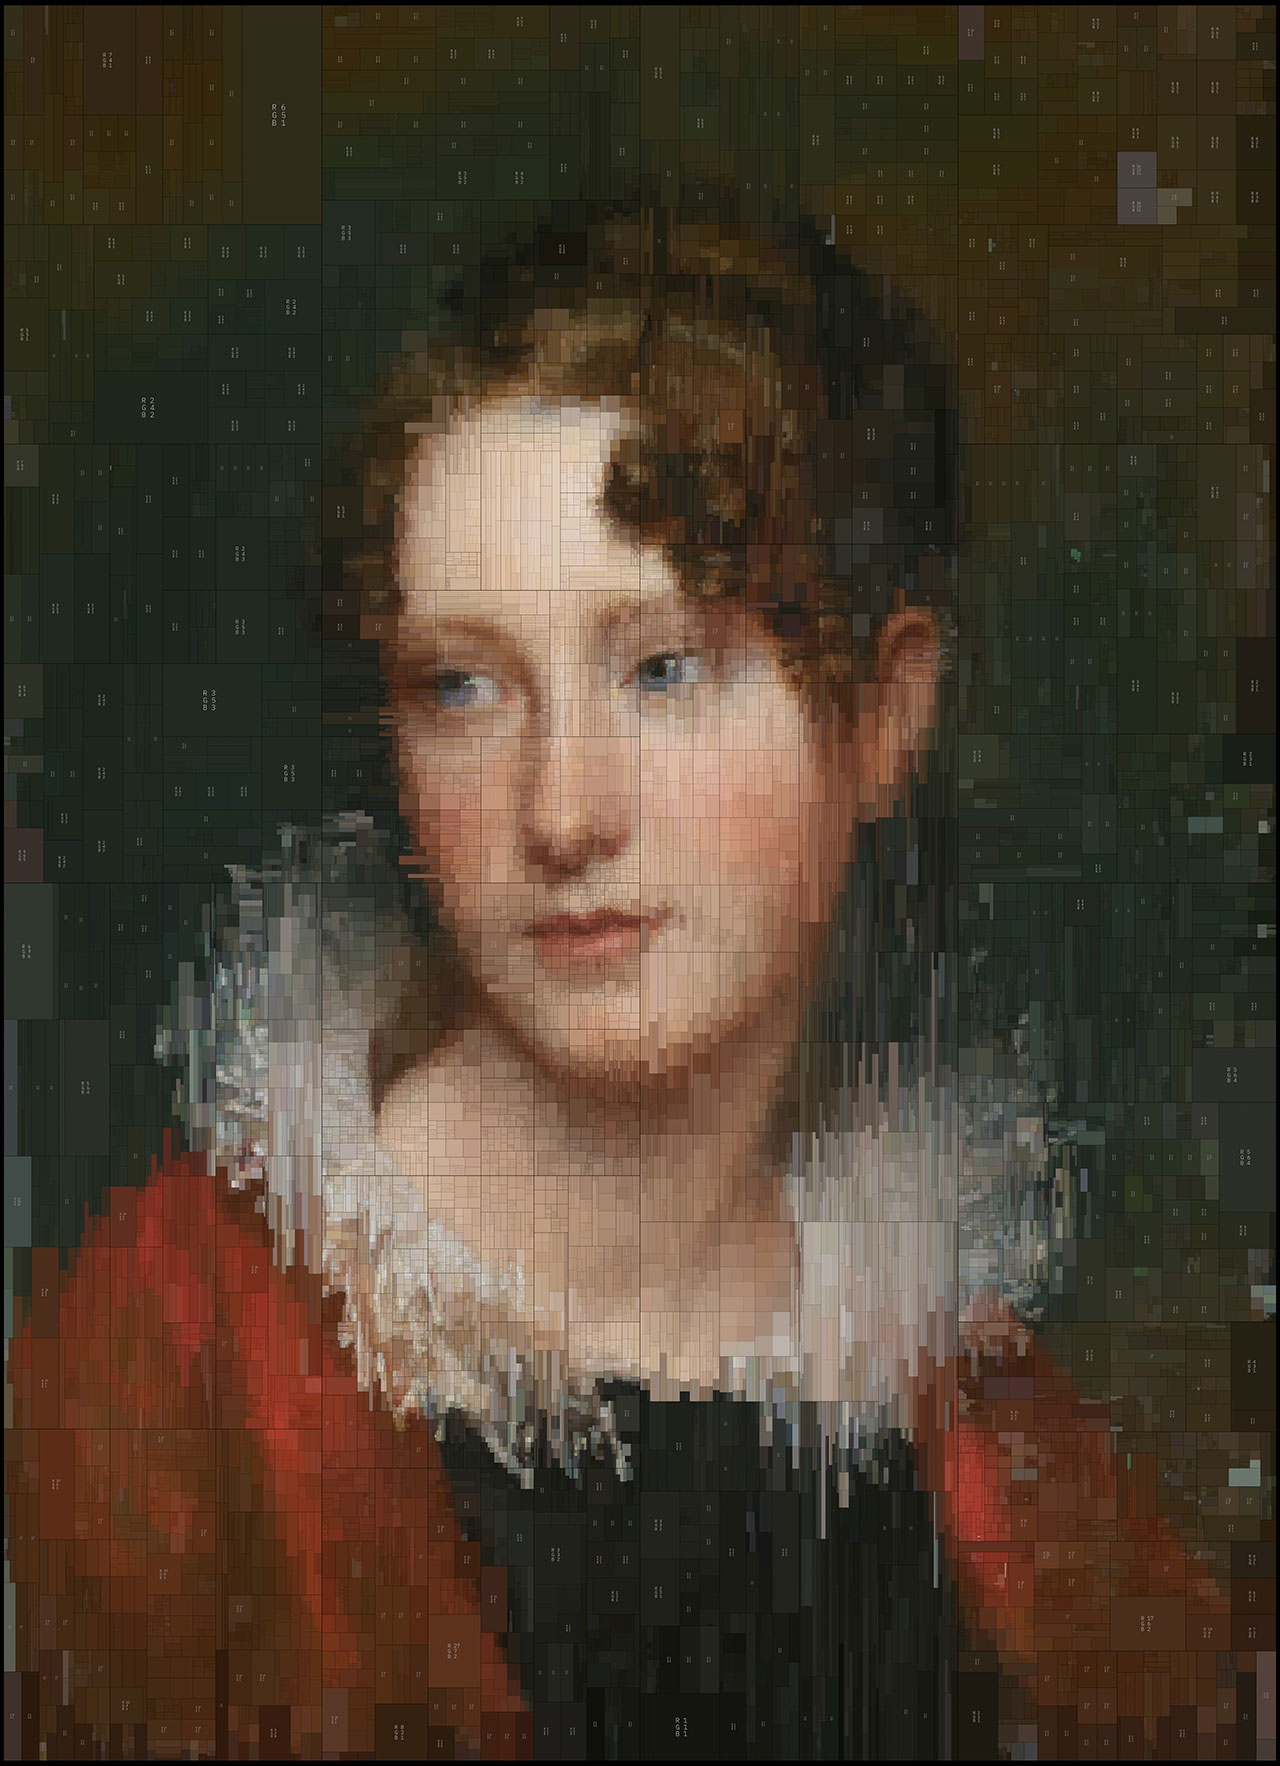 Rosalba, from Portraits series by Dimitris Ladopoulos (Original painting - Portrait of Rosalba Peale by Rembrandt Peale, 1820).